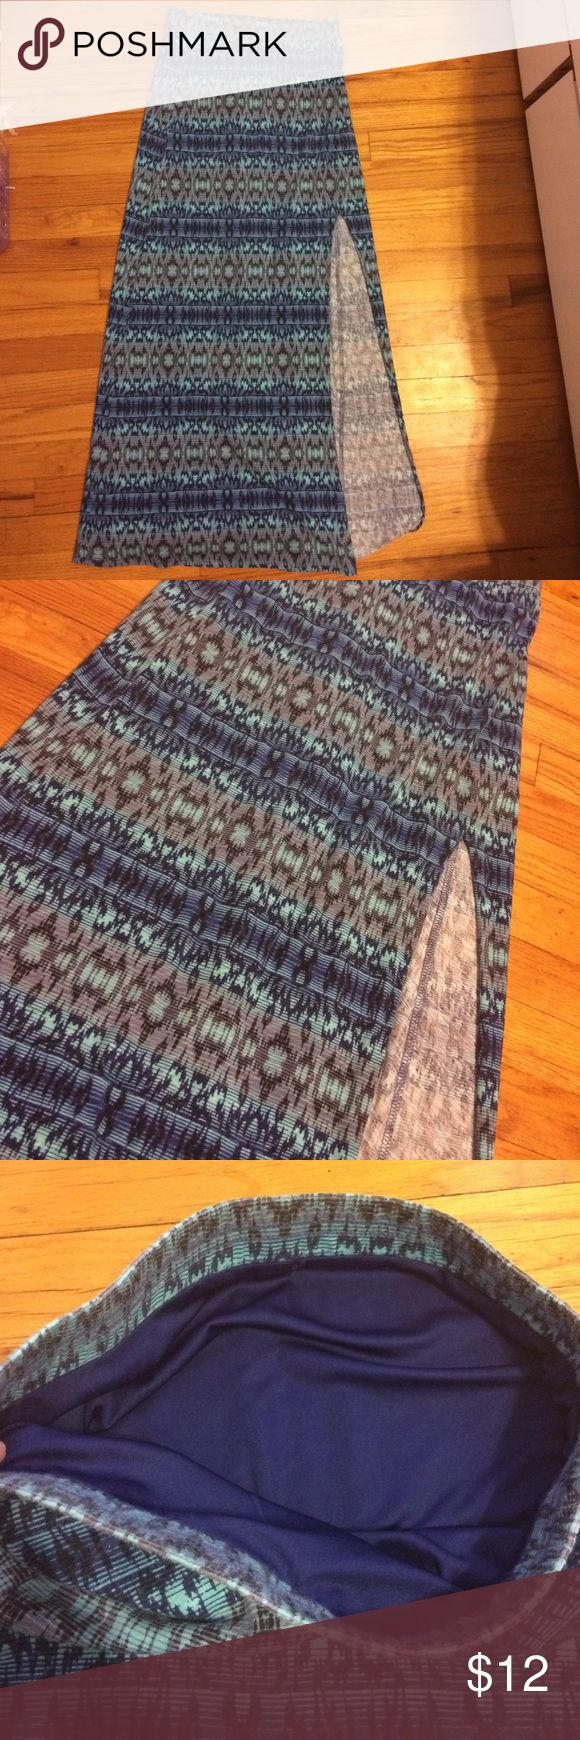 American Eagle Outfitters Maci Skirt XS gently used only work a couple times patterned maci skirt from American Eagle size xs. Very cute American Eagle Outfitters Skirts Maxi